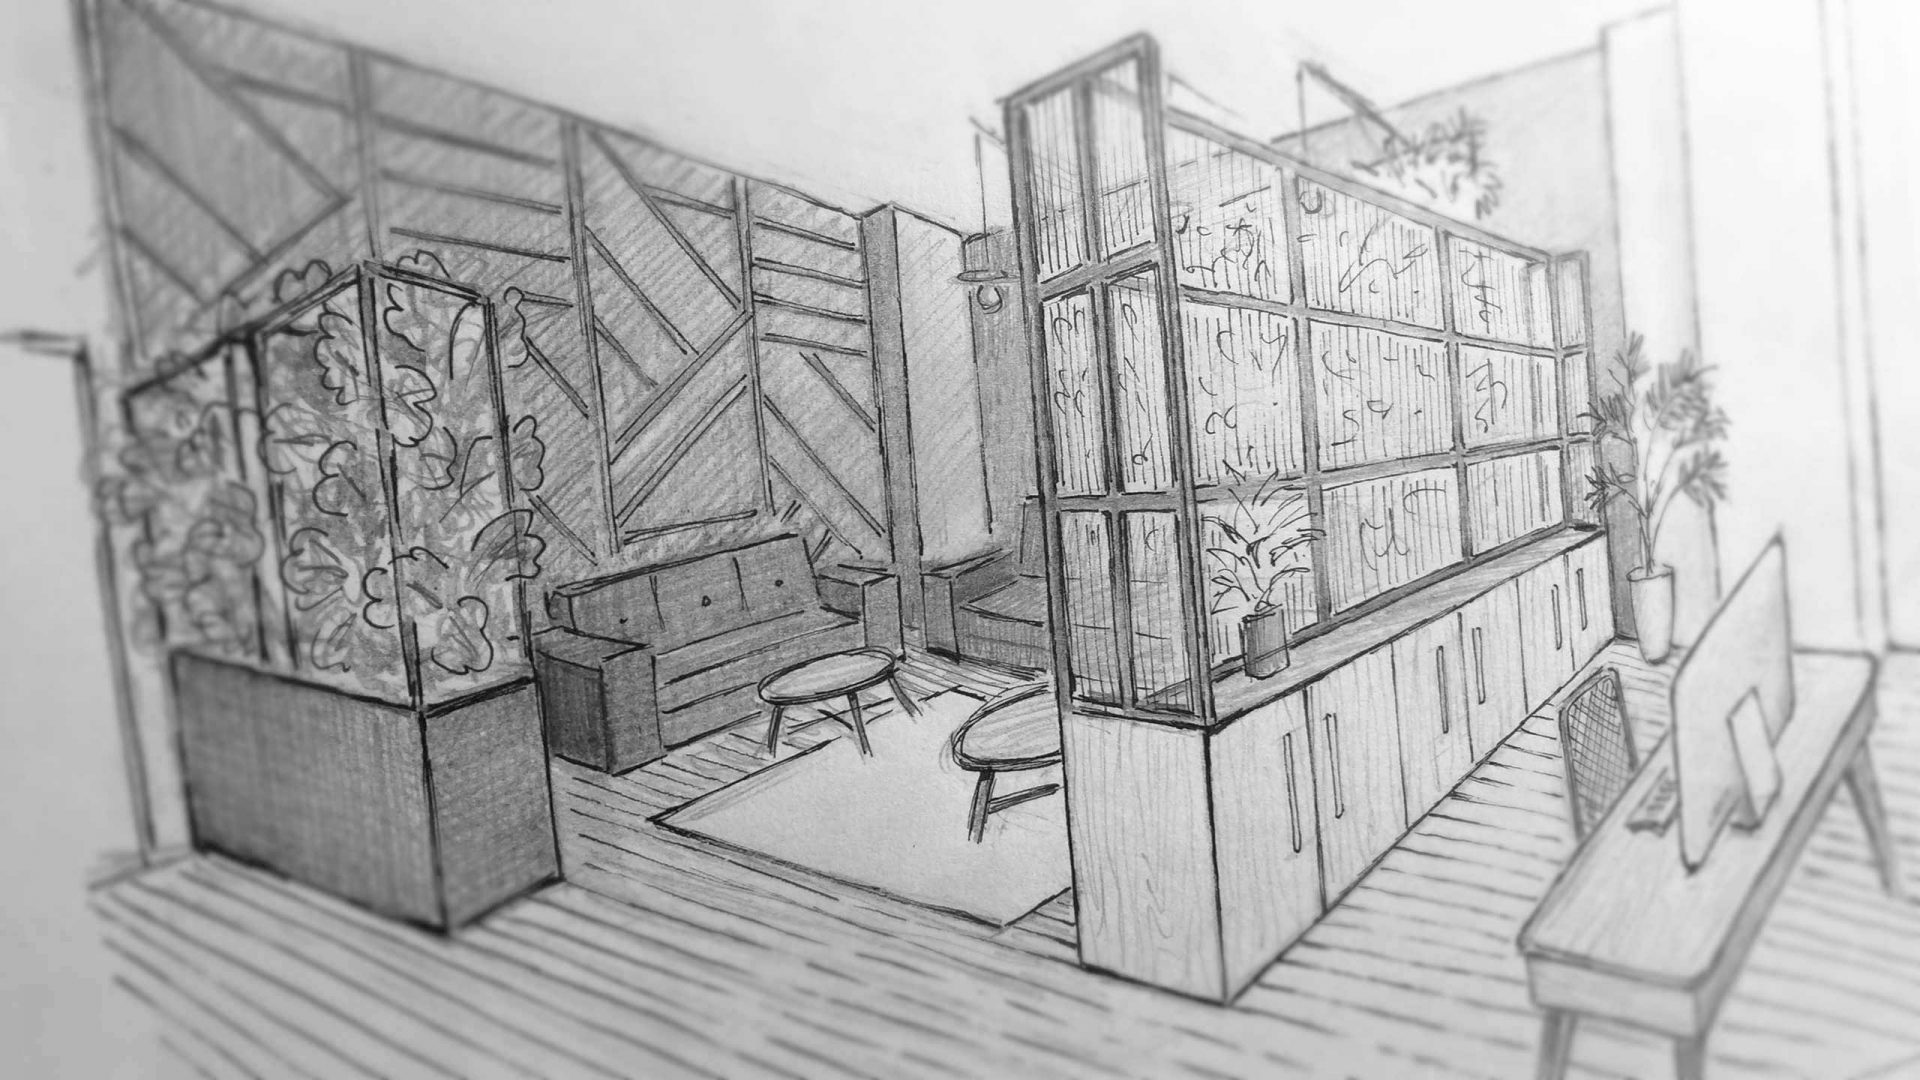 Sketch for an office design by Liqui showing the lounge area.